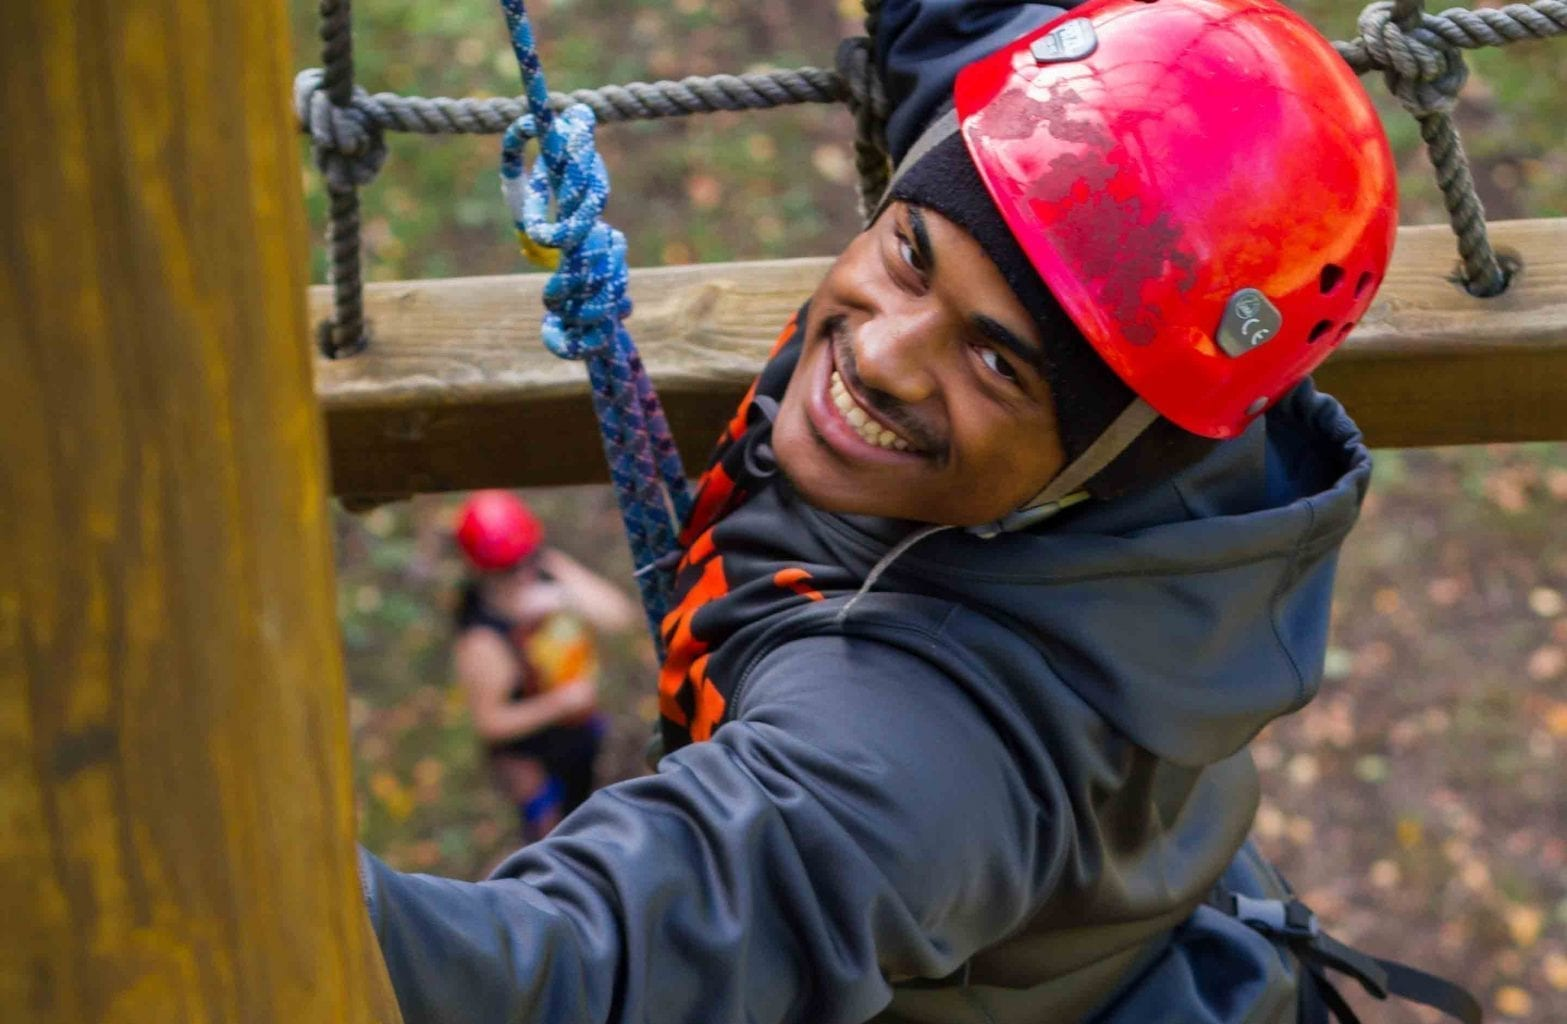 A college student on a group trip with ACE Adventure Resort ascends the ropes on the Team Challenge Course.